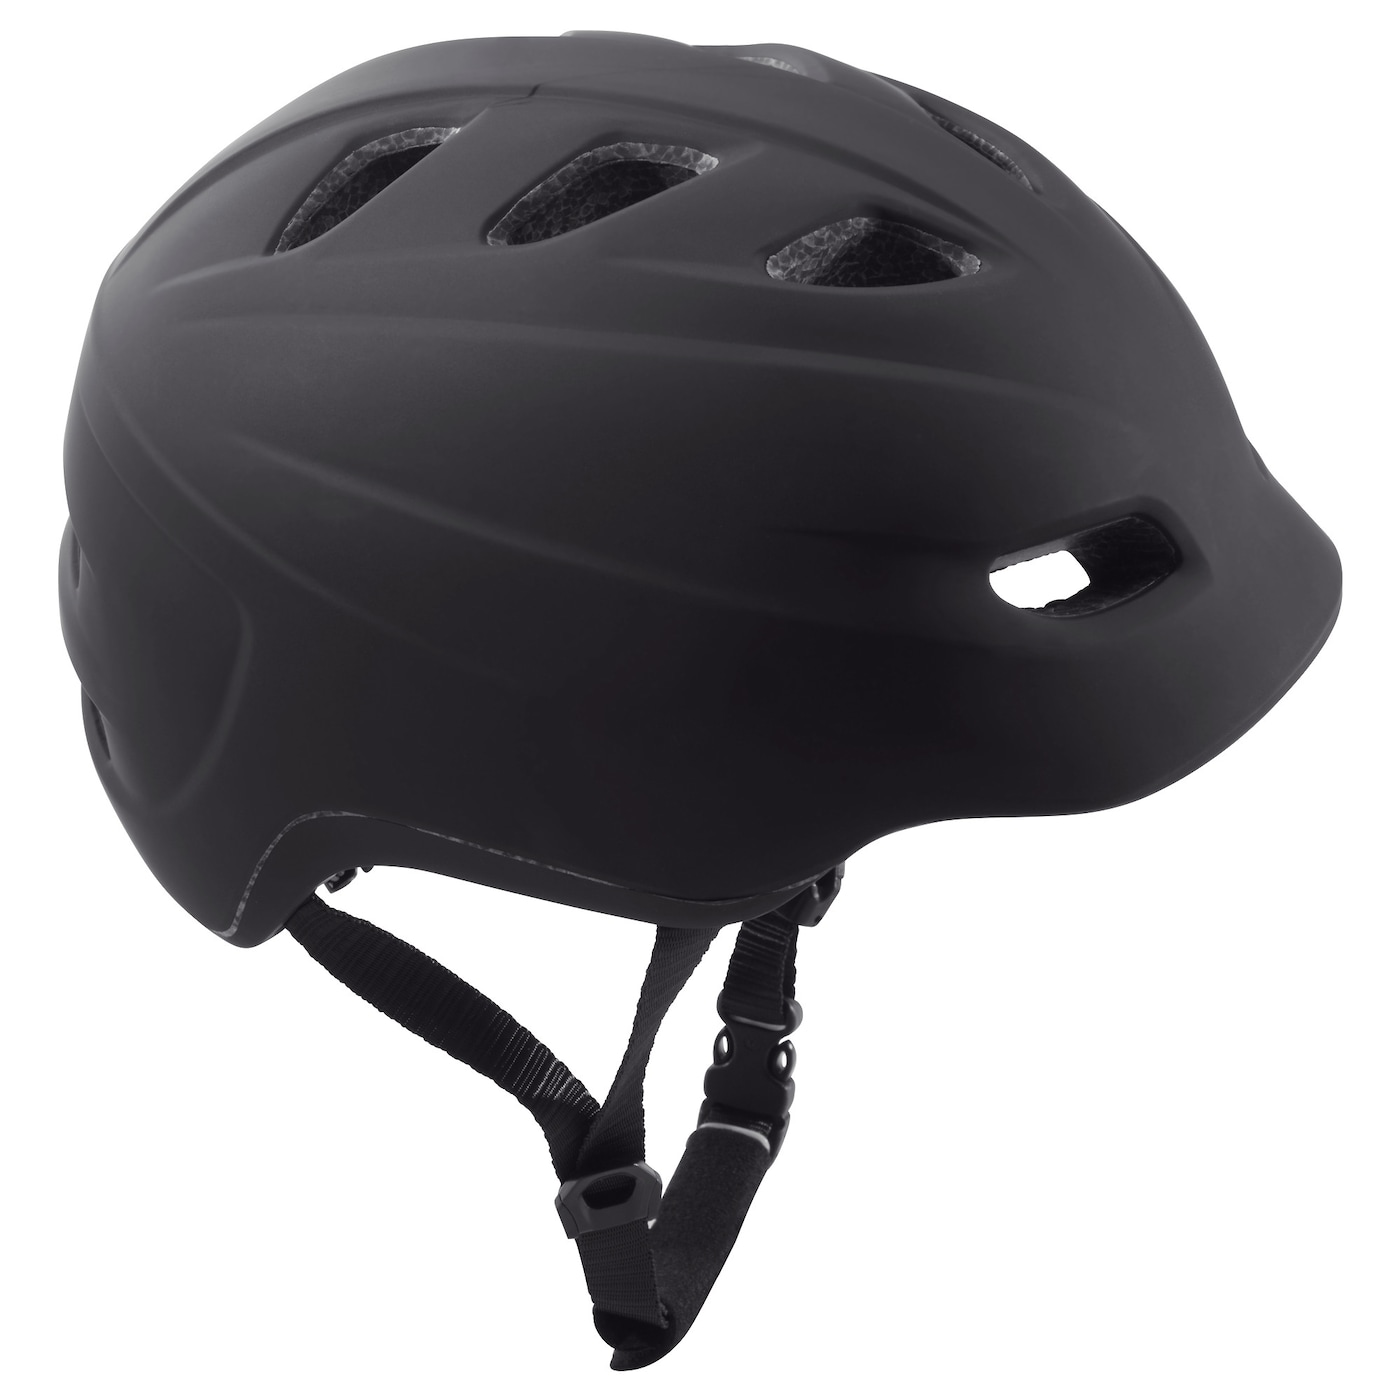 IKEA SLADDA bicycle helmet